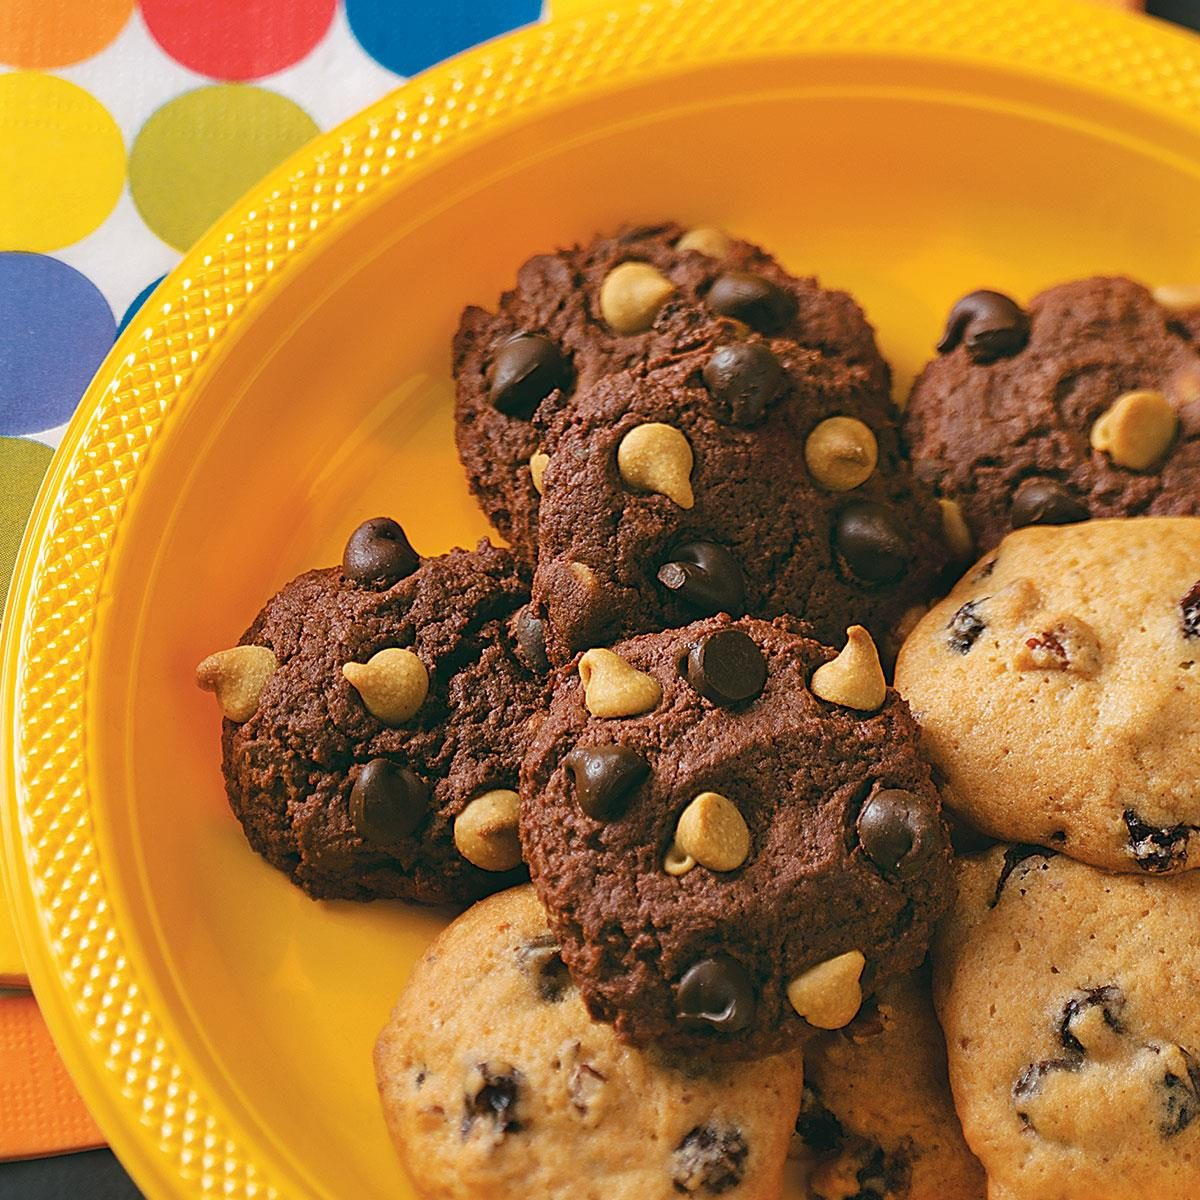 Cakes and cookie recipes